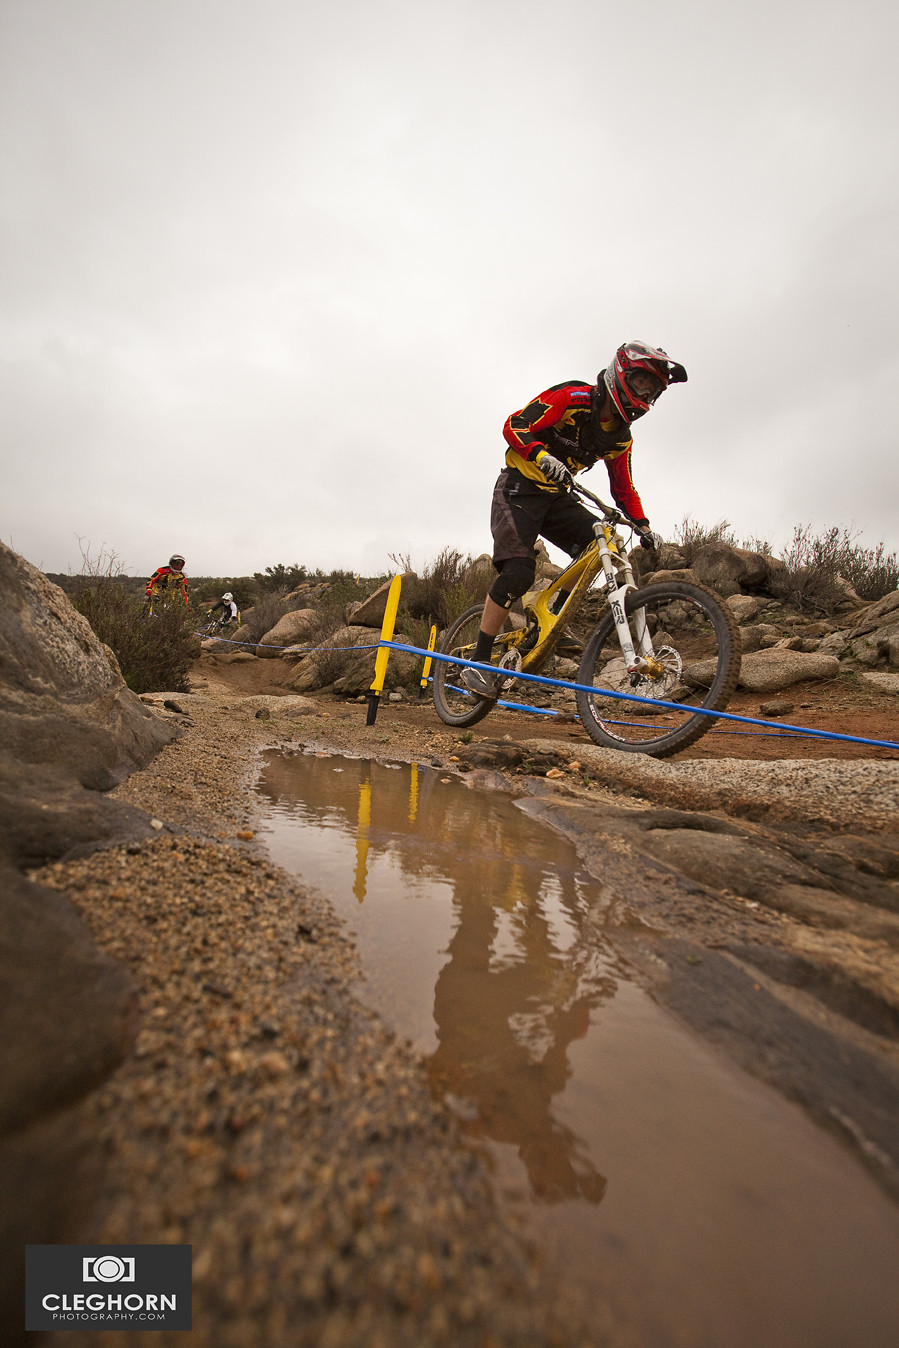 Top of the saddle - Cleghorn Photography - Mountain Biking Pictures - Vital MTB